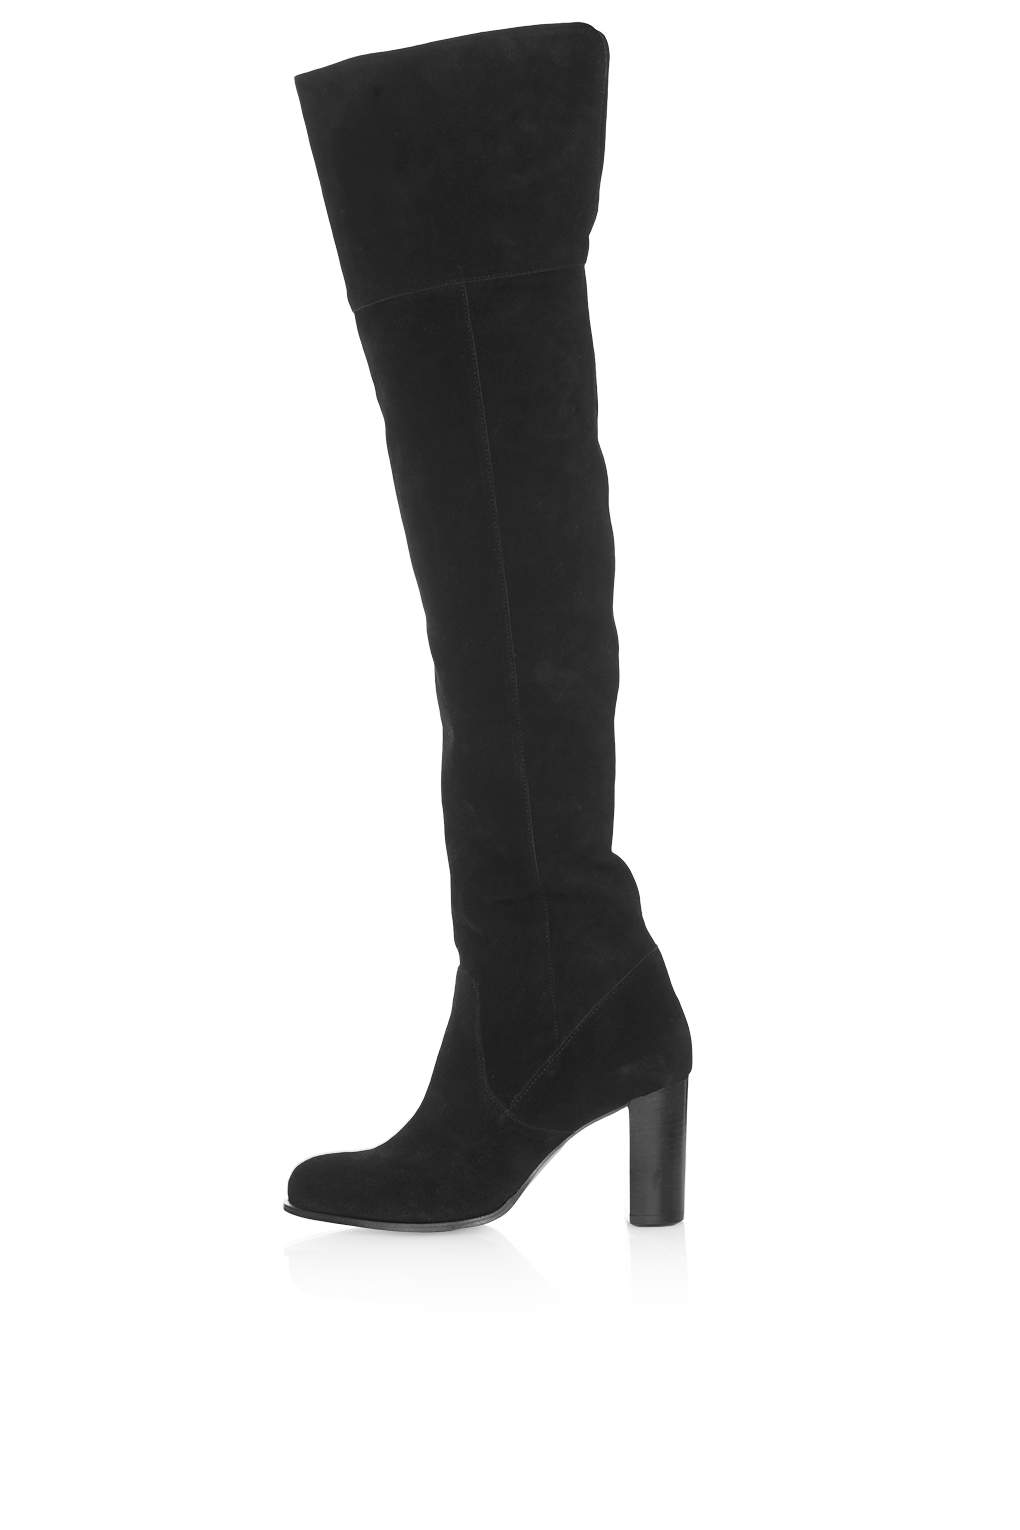 CONTROL High Leg Boots - Knee High Boots - Boots - Shoes